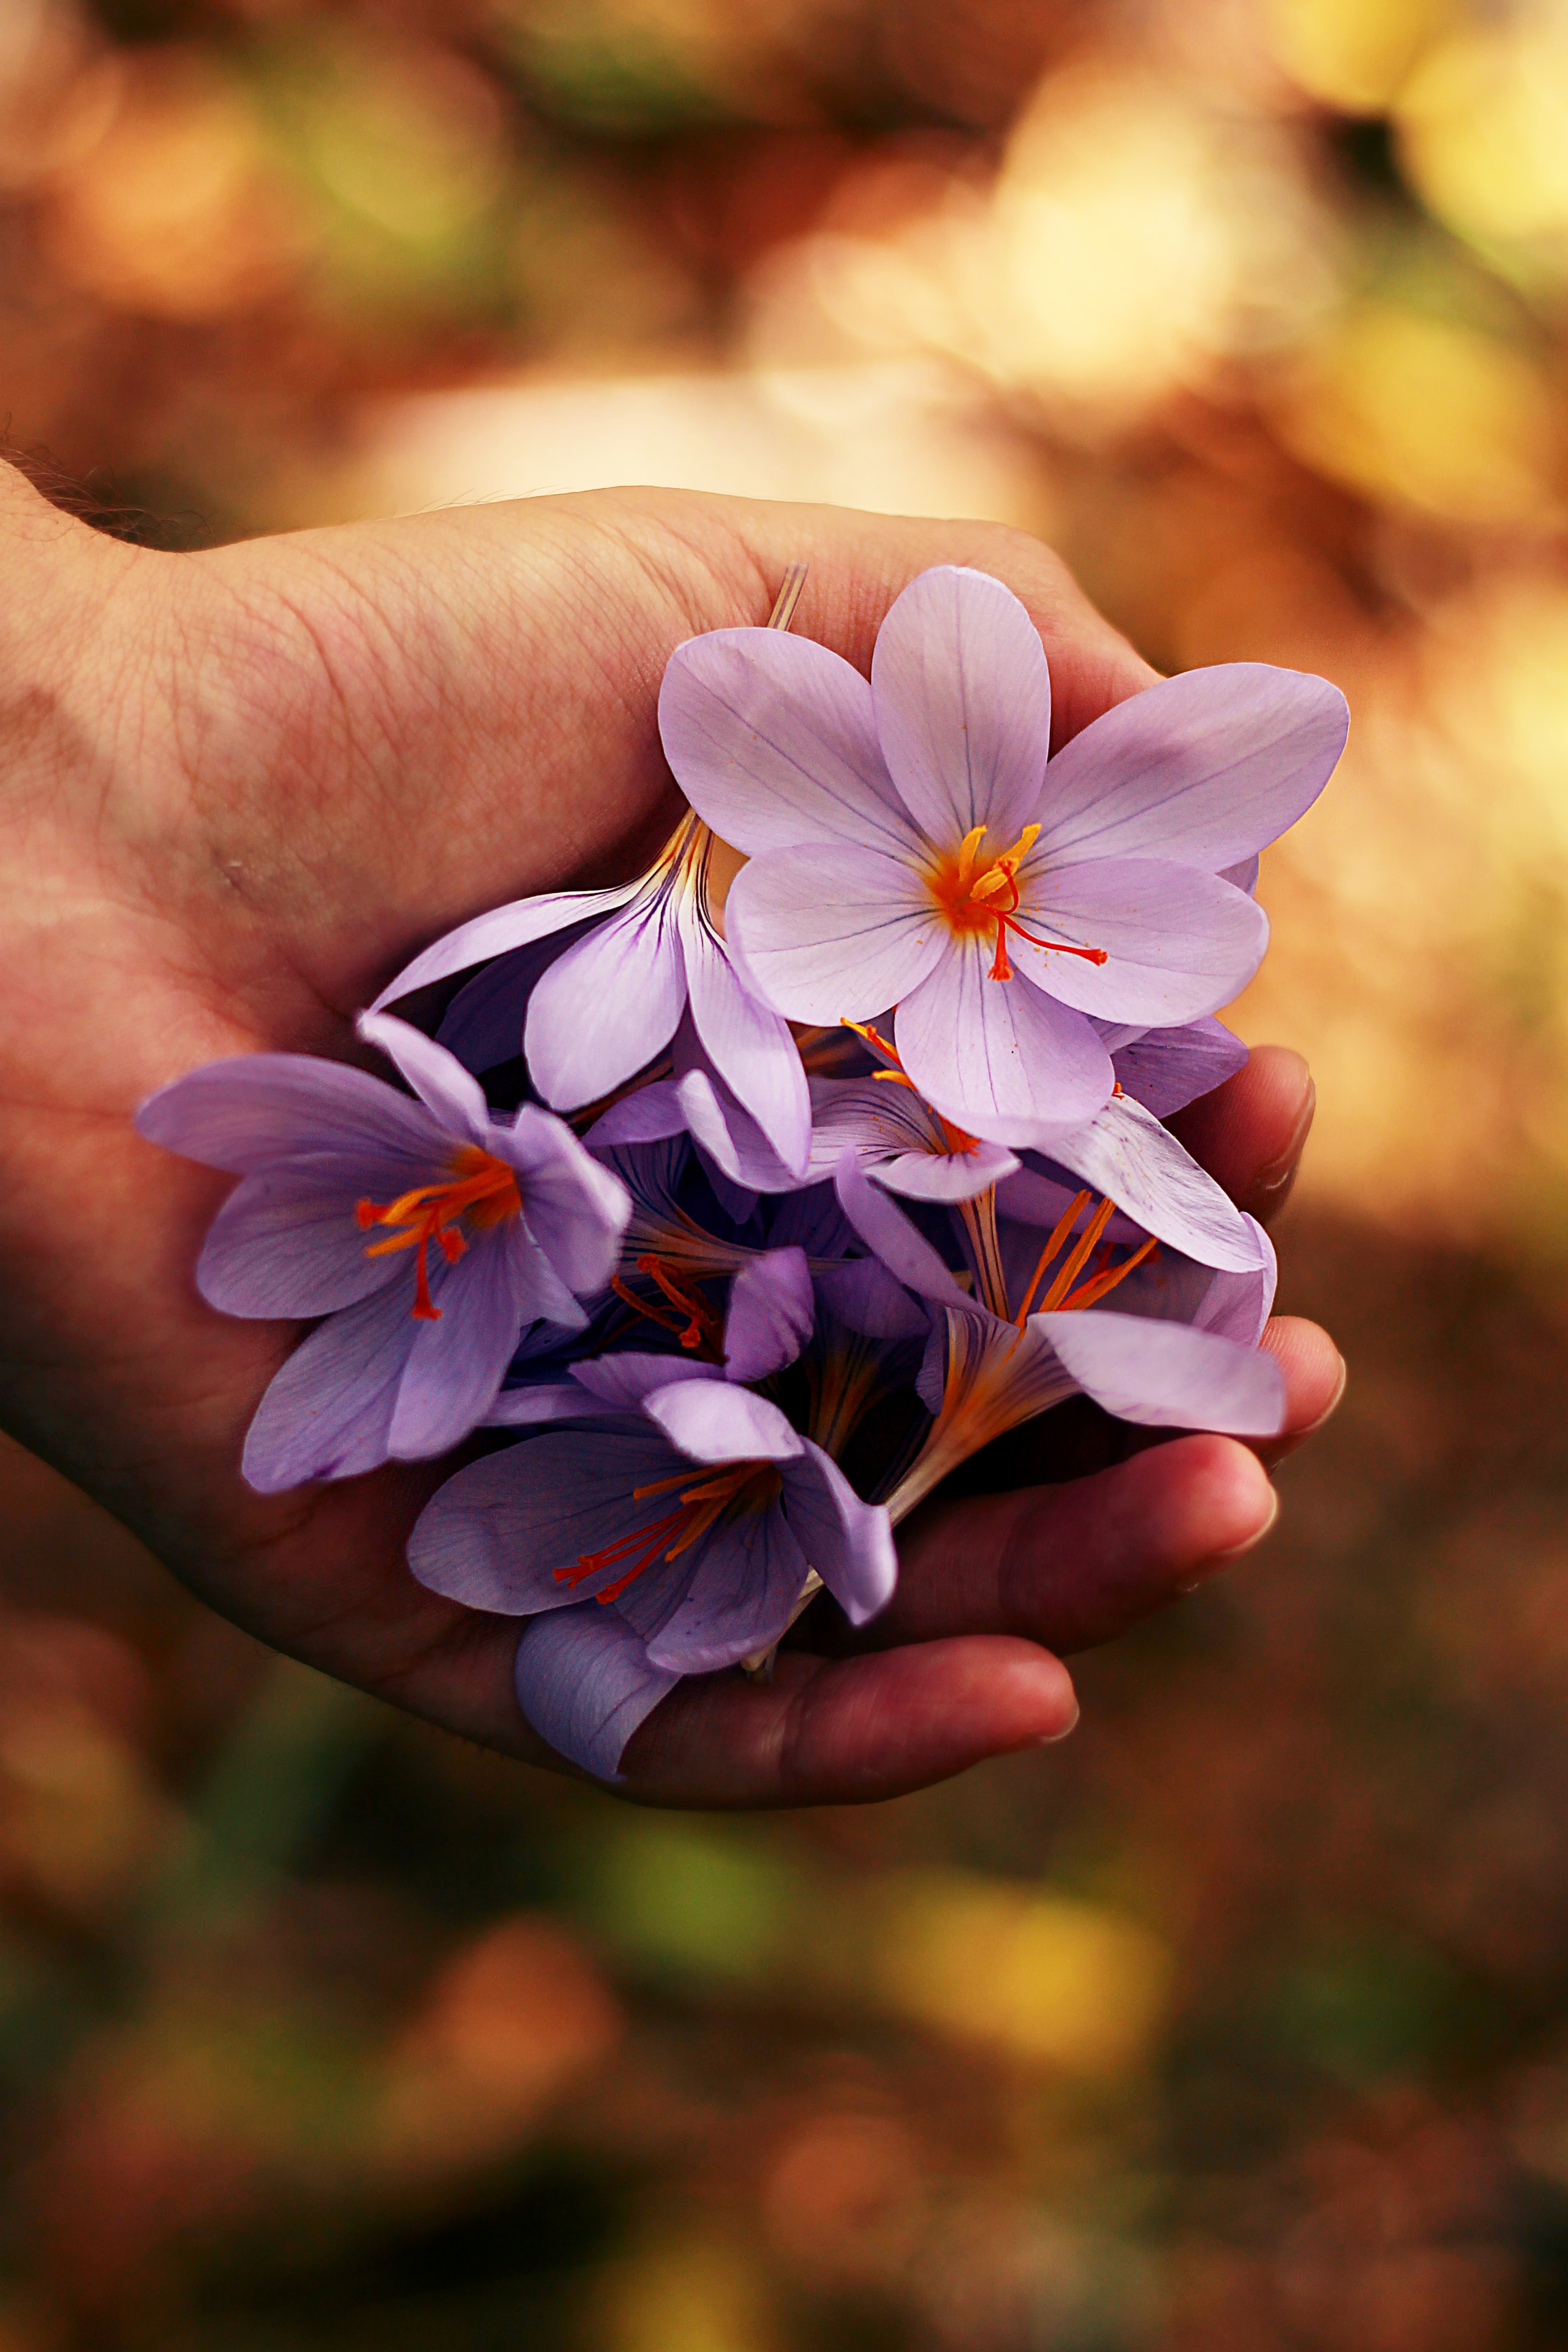 purple petaled flowers on person's hand